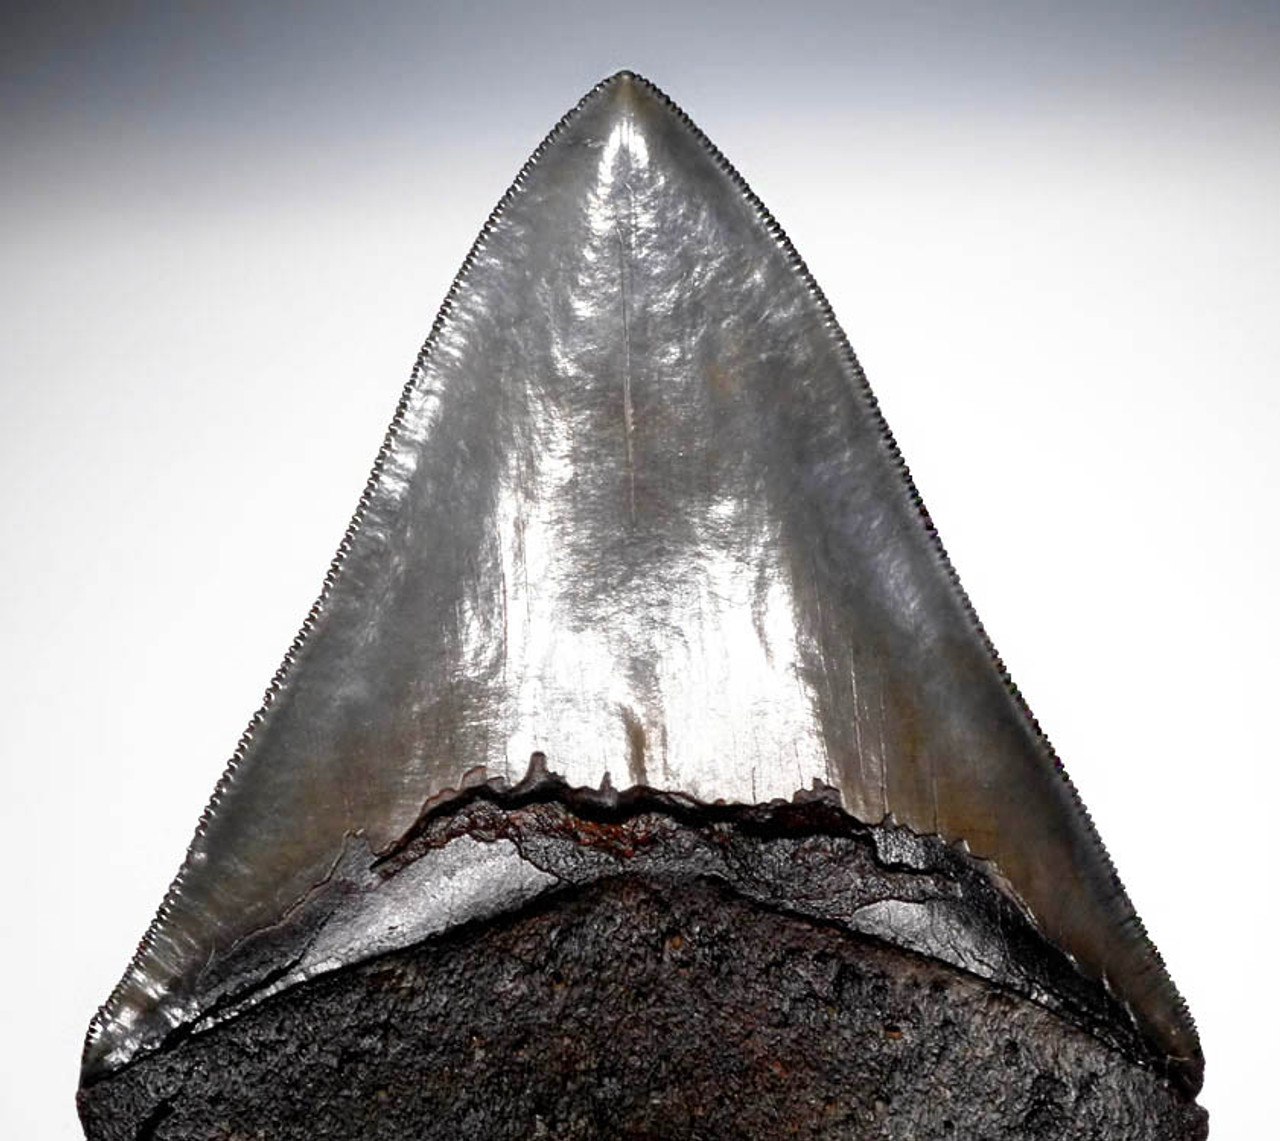 SH6-268 - CHOICE GRADE 5.15 INCH MEGALODON SHARK FOSSIL TOOTH WITH BLUE AND OLIVE ENAMEL AND SUPERB SERRATIONS